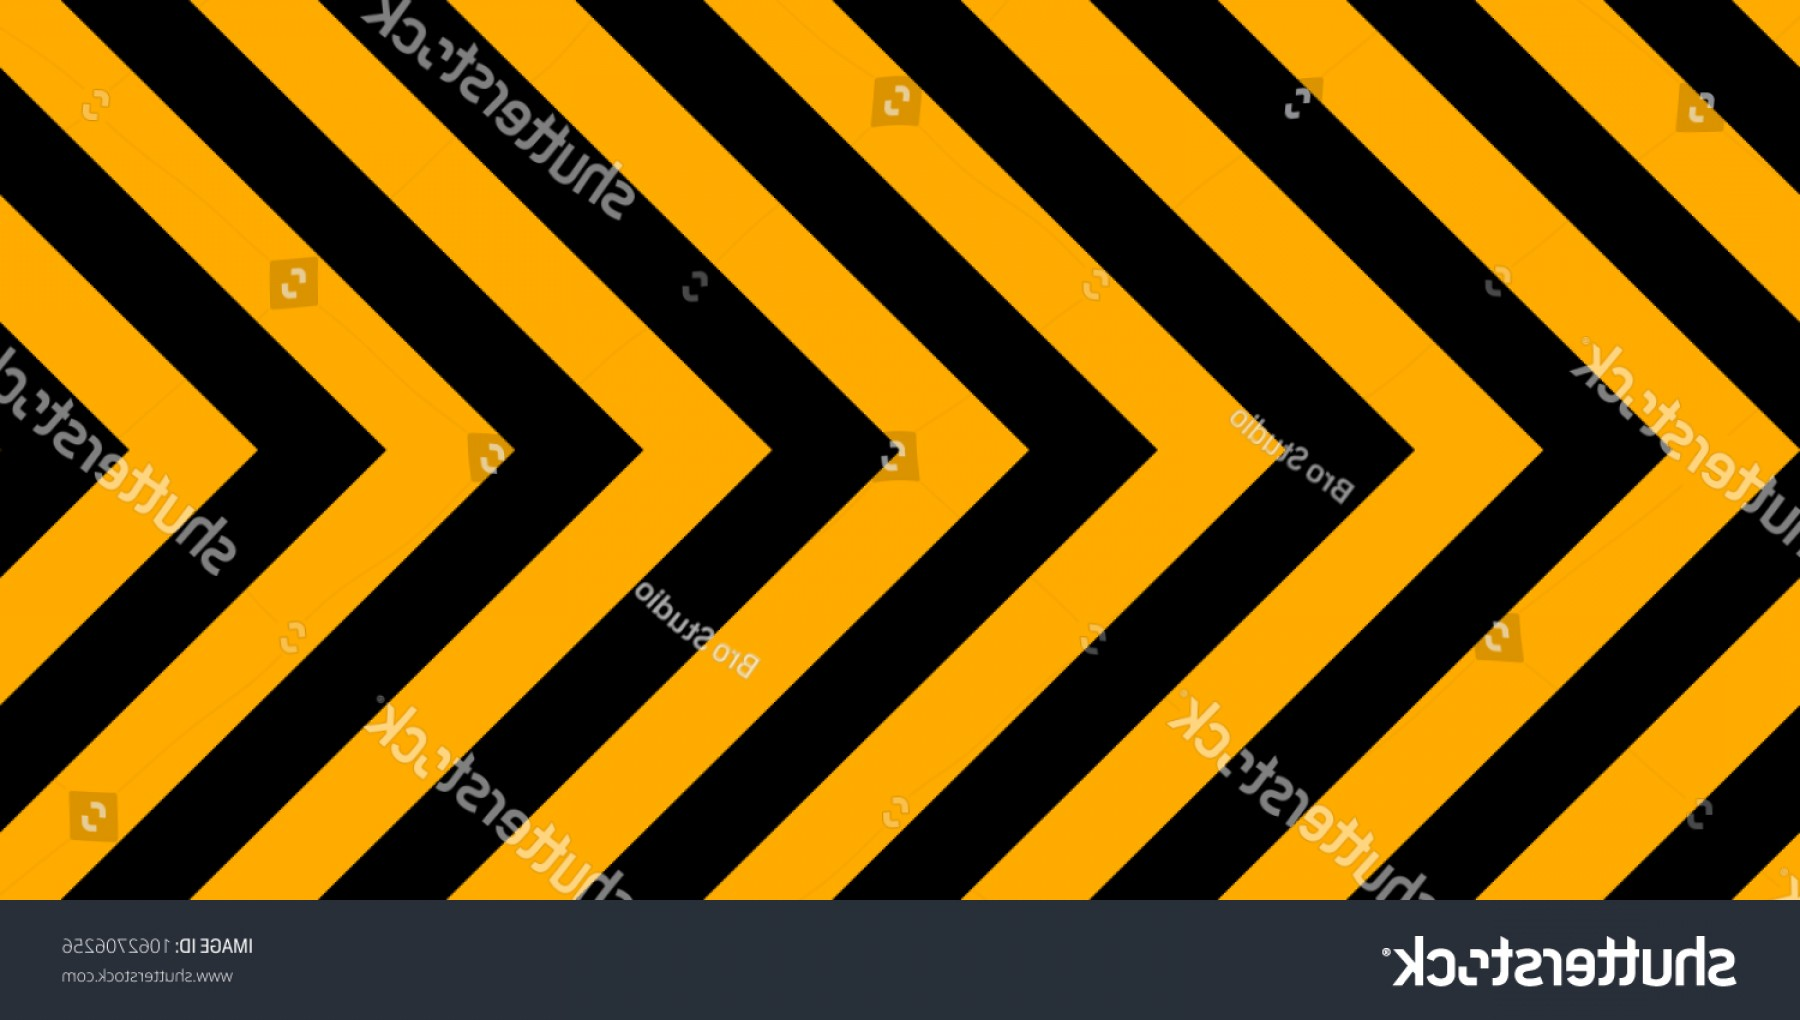 Caution Stripes Vector: Horizontal Background Yellow Black Stripes Industrial